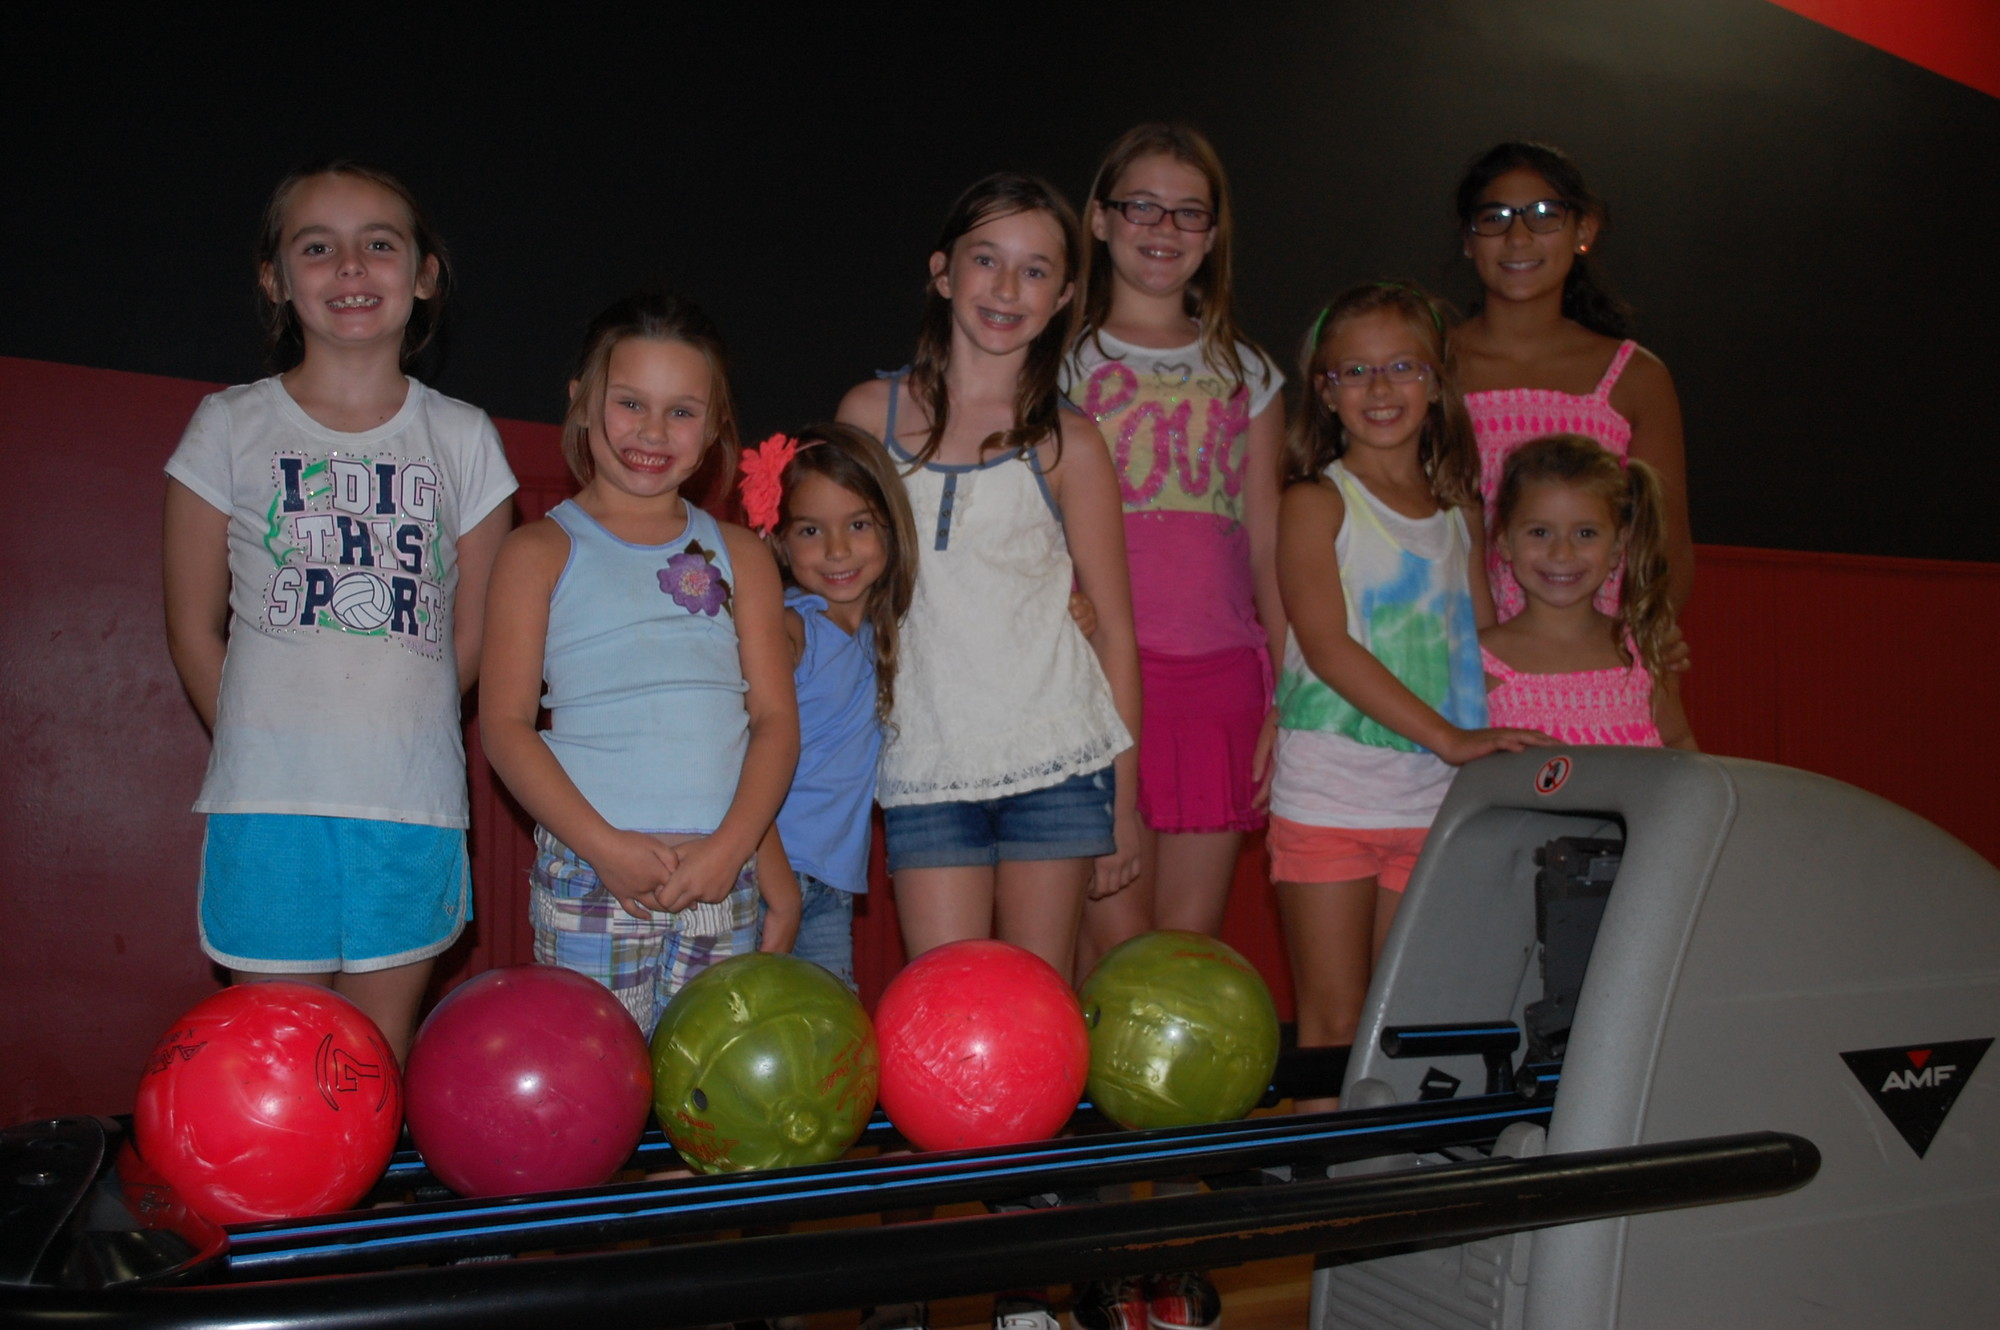 Children who participated in the Wantagh Public Library's summer reading program were invited to a bowling party last Friday evening. From left are Kaitlin Dillon, Madison Allan, Sophia Cornella, Samantha Allan, Lily Bennett, Alexandra Corrella, Alexa Gottlieb and Addison Gottlieb.